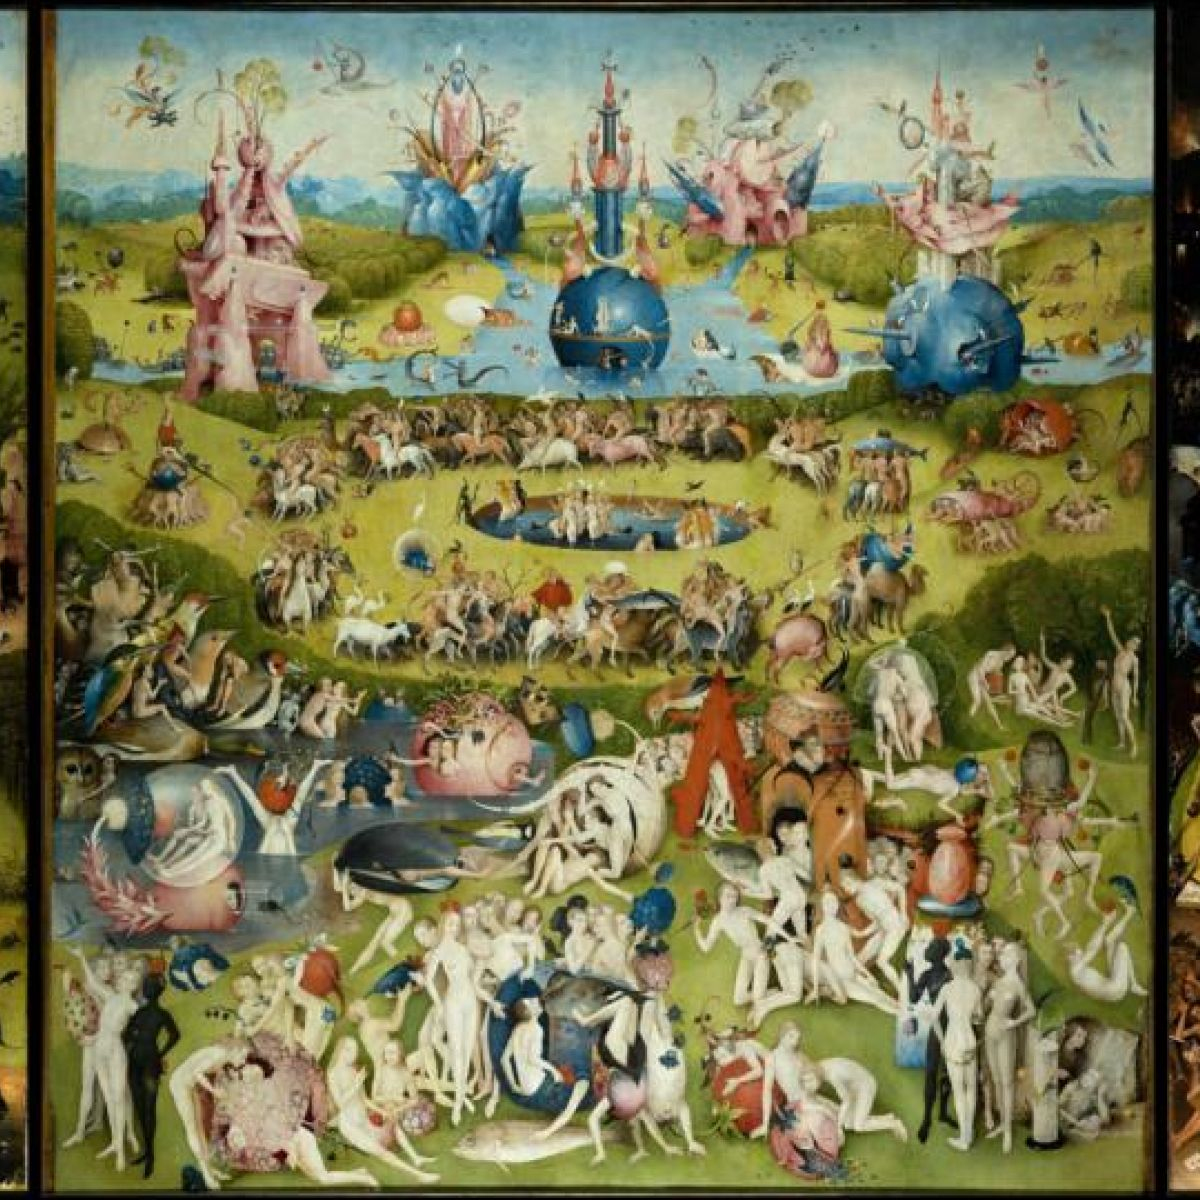 Saving Hieronymus Bosch from the devil